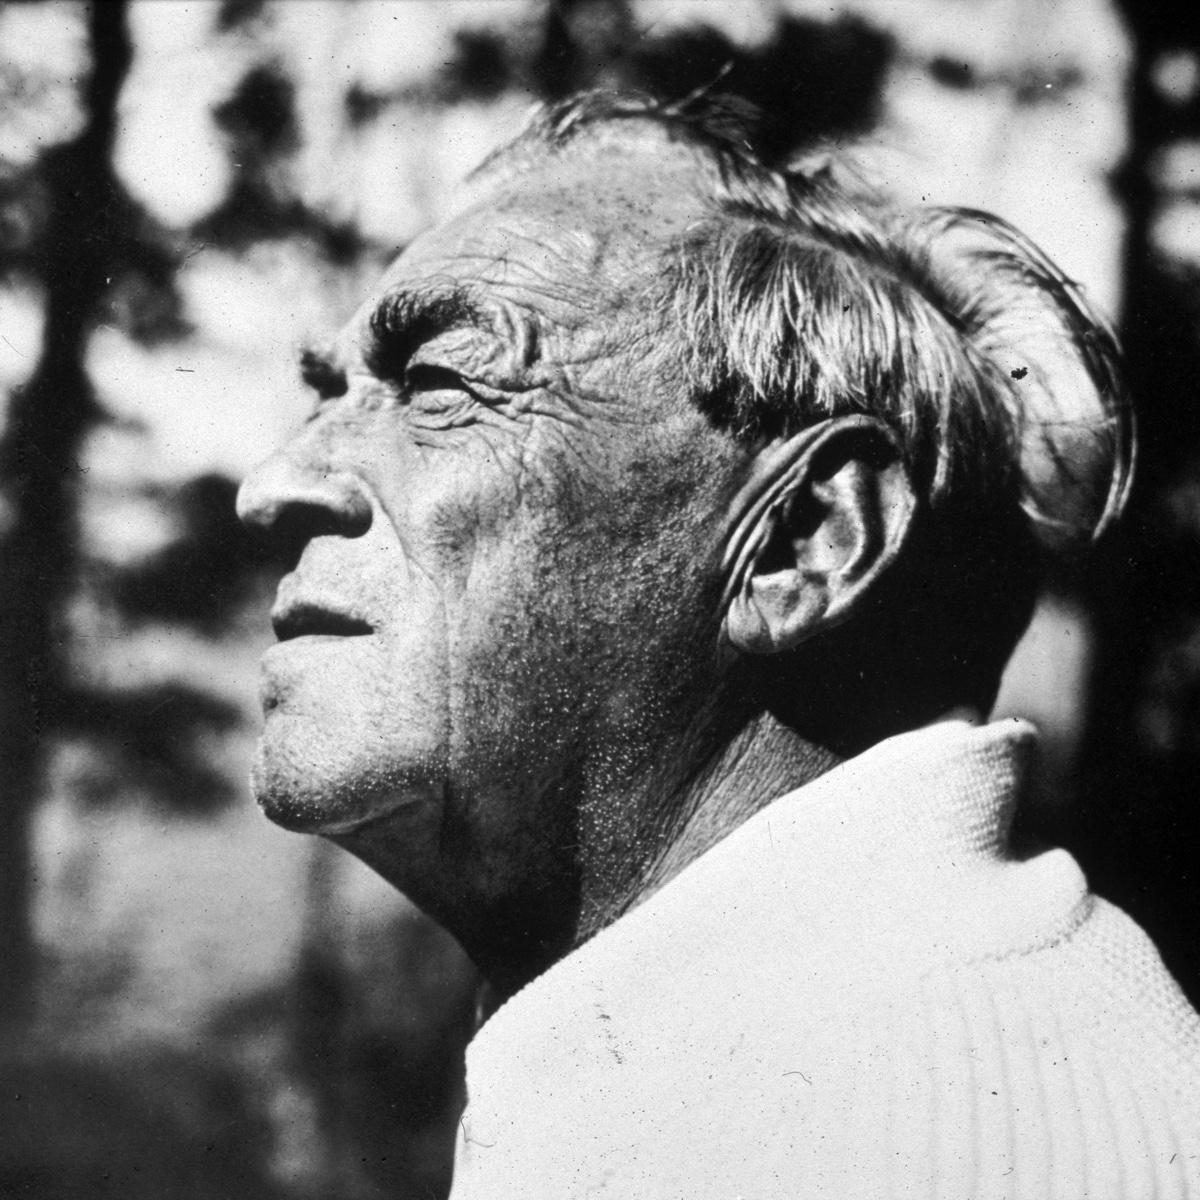 Alvar Aalto in the 1960s. Photo by Trond Hedström.